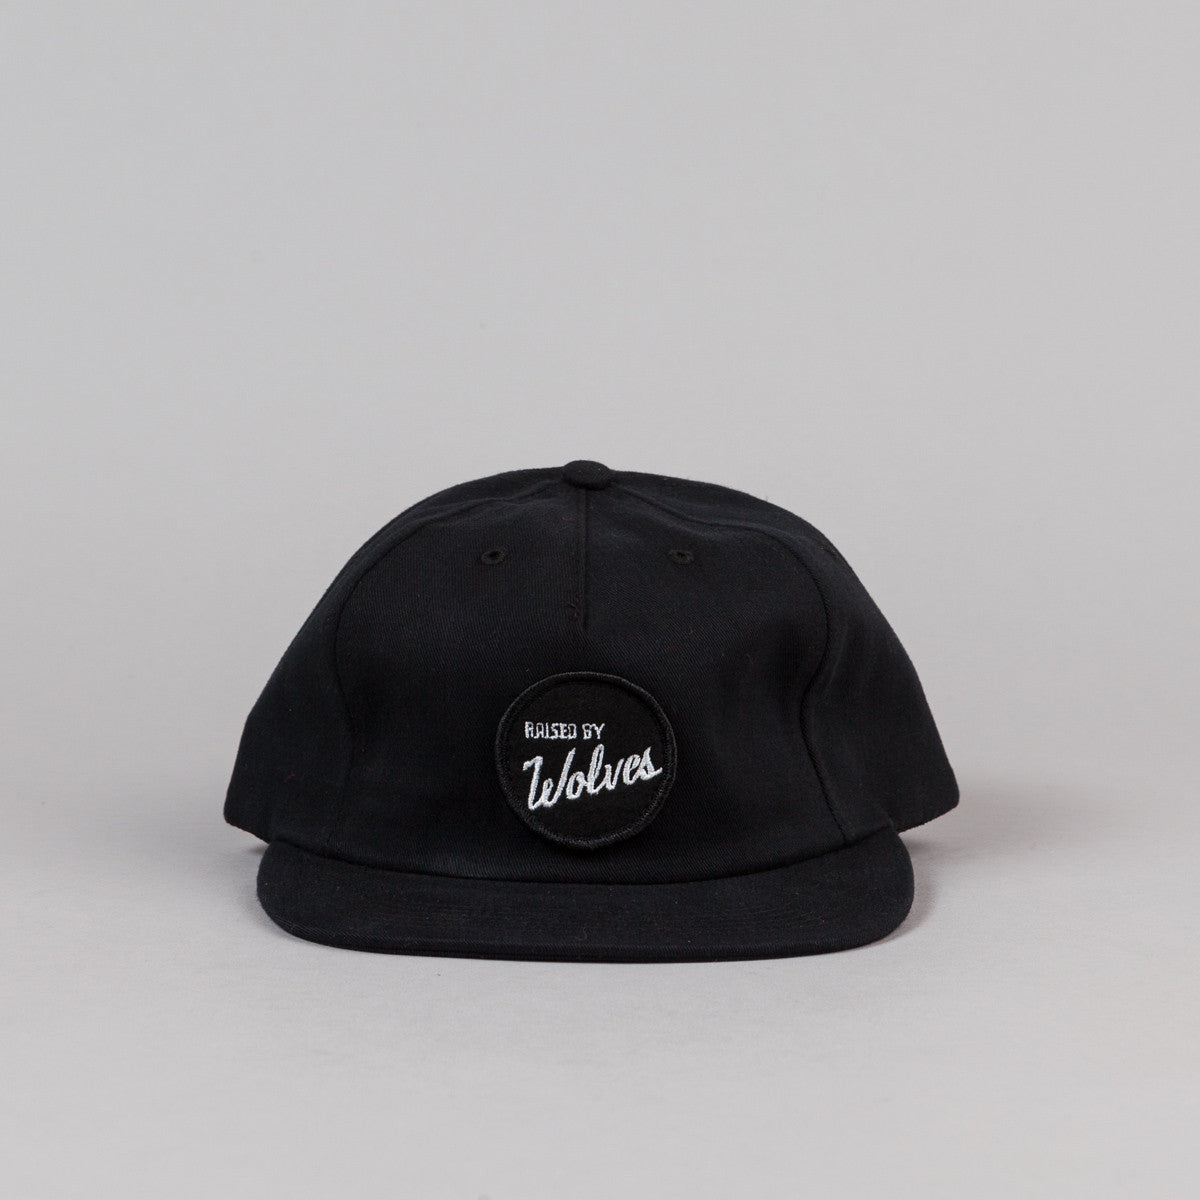 Raised By Wolves Varsity Polo Cap - Black Sanded Brush Twill